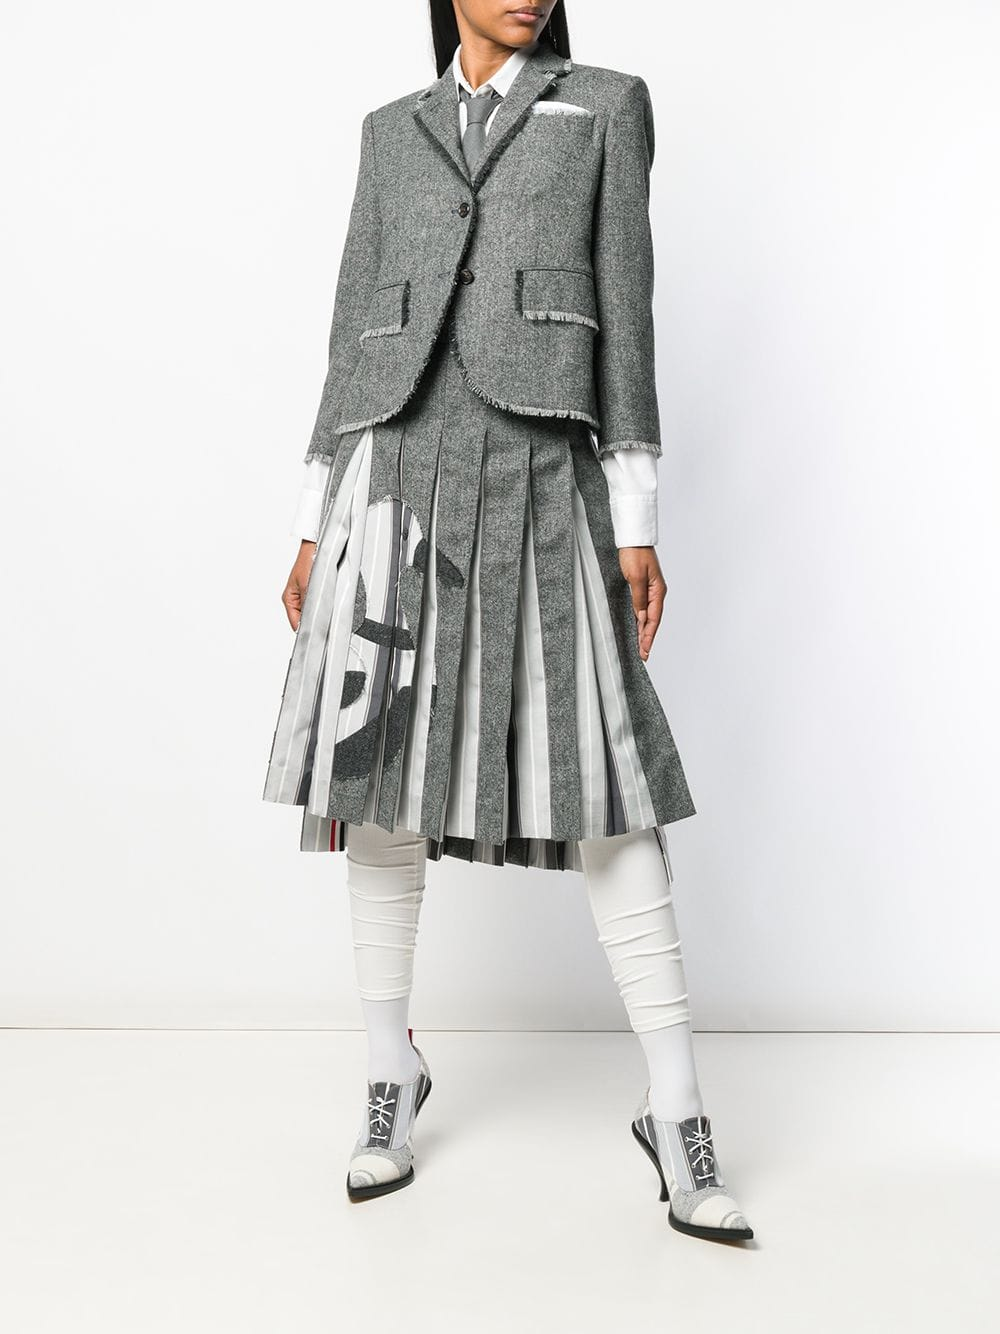 THOM BROWNE WOMEN CLASSIC SB S/C W/ FRAY IN SOLID DONEGAL TWEED JACKET